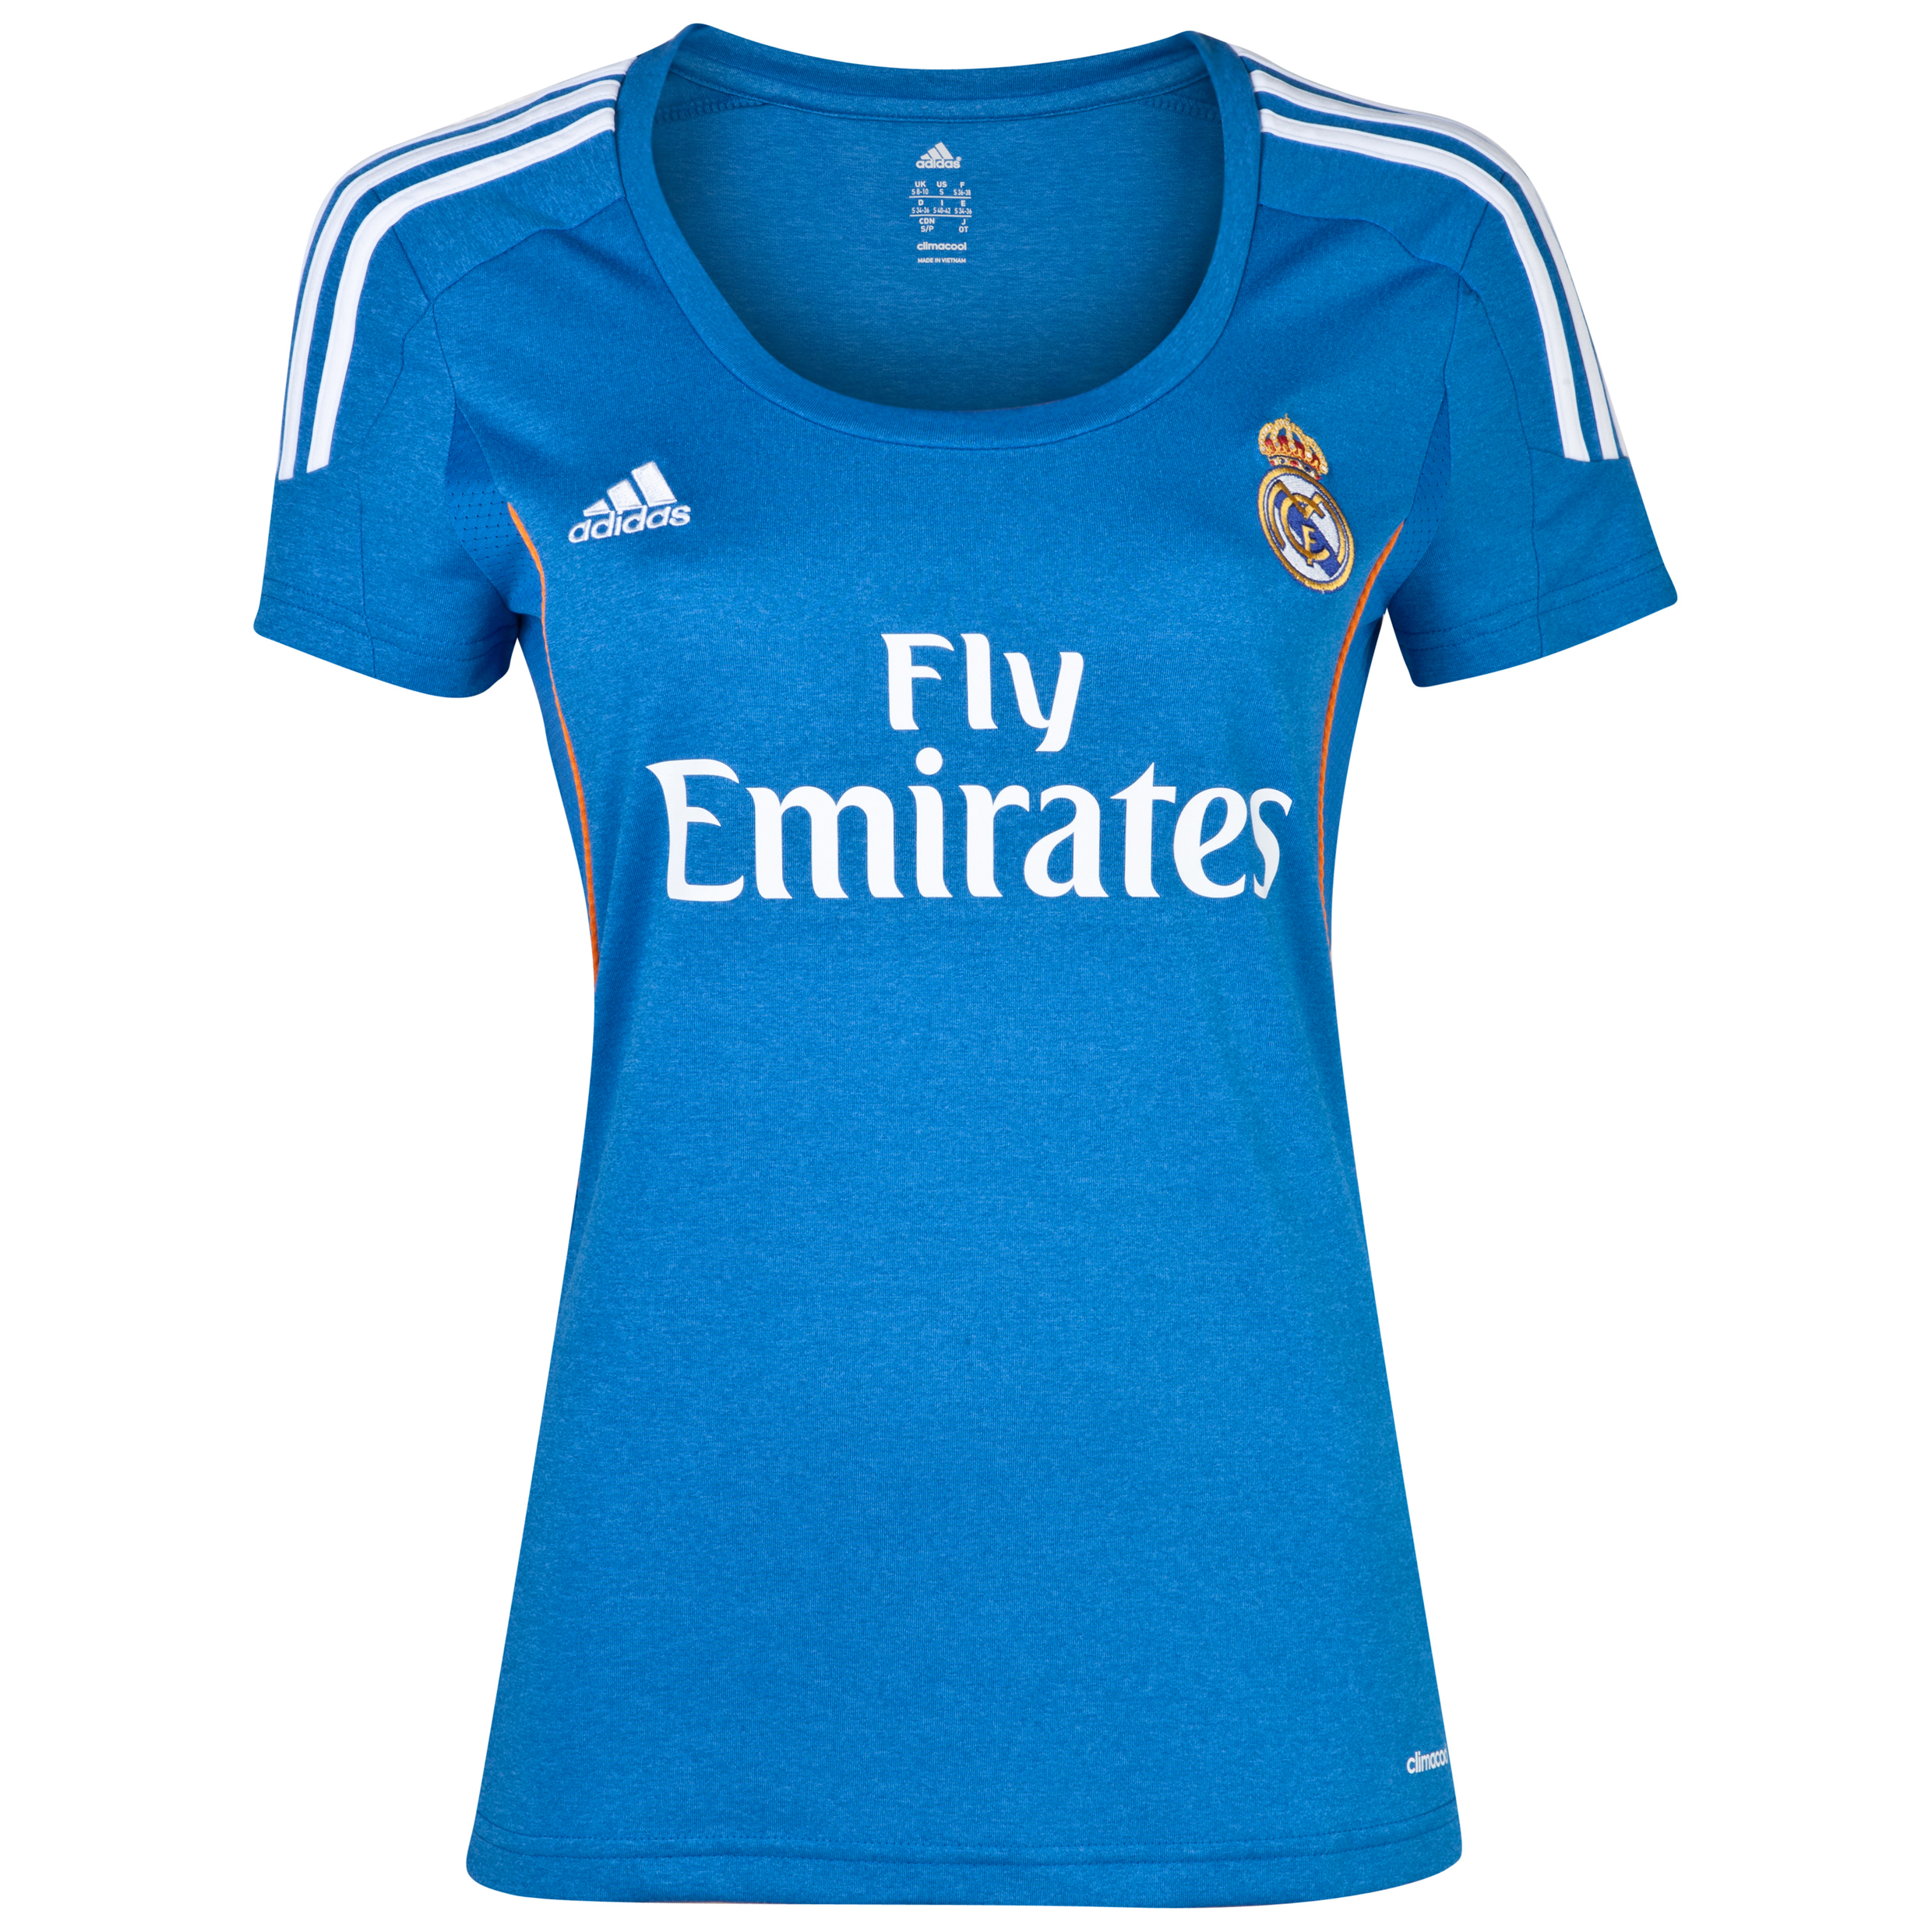 Buy Real Madrid Away Kit 2013/14 Womens